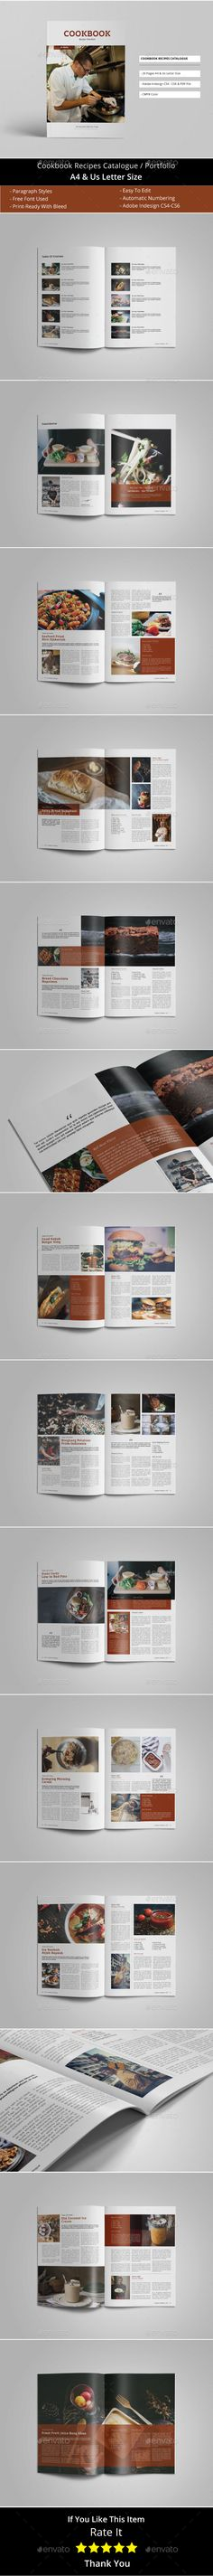 Cookbook Recipes Catalogue / Brochure - #Catalogs #Brochures Download here: https://graphicriver.net/item/cookbook-recipes-catalogue-brochure/19502783?ref=alena994